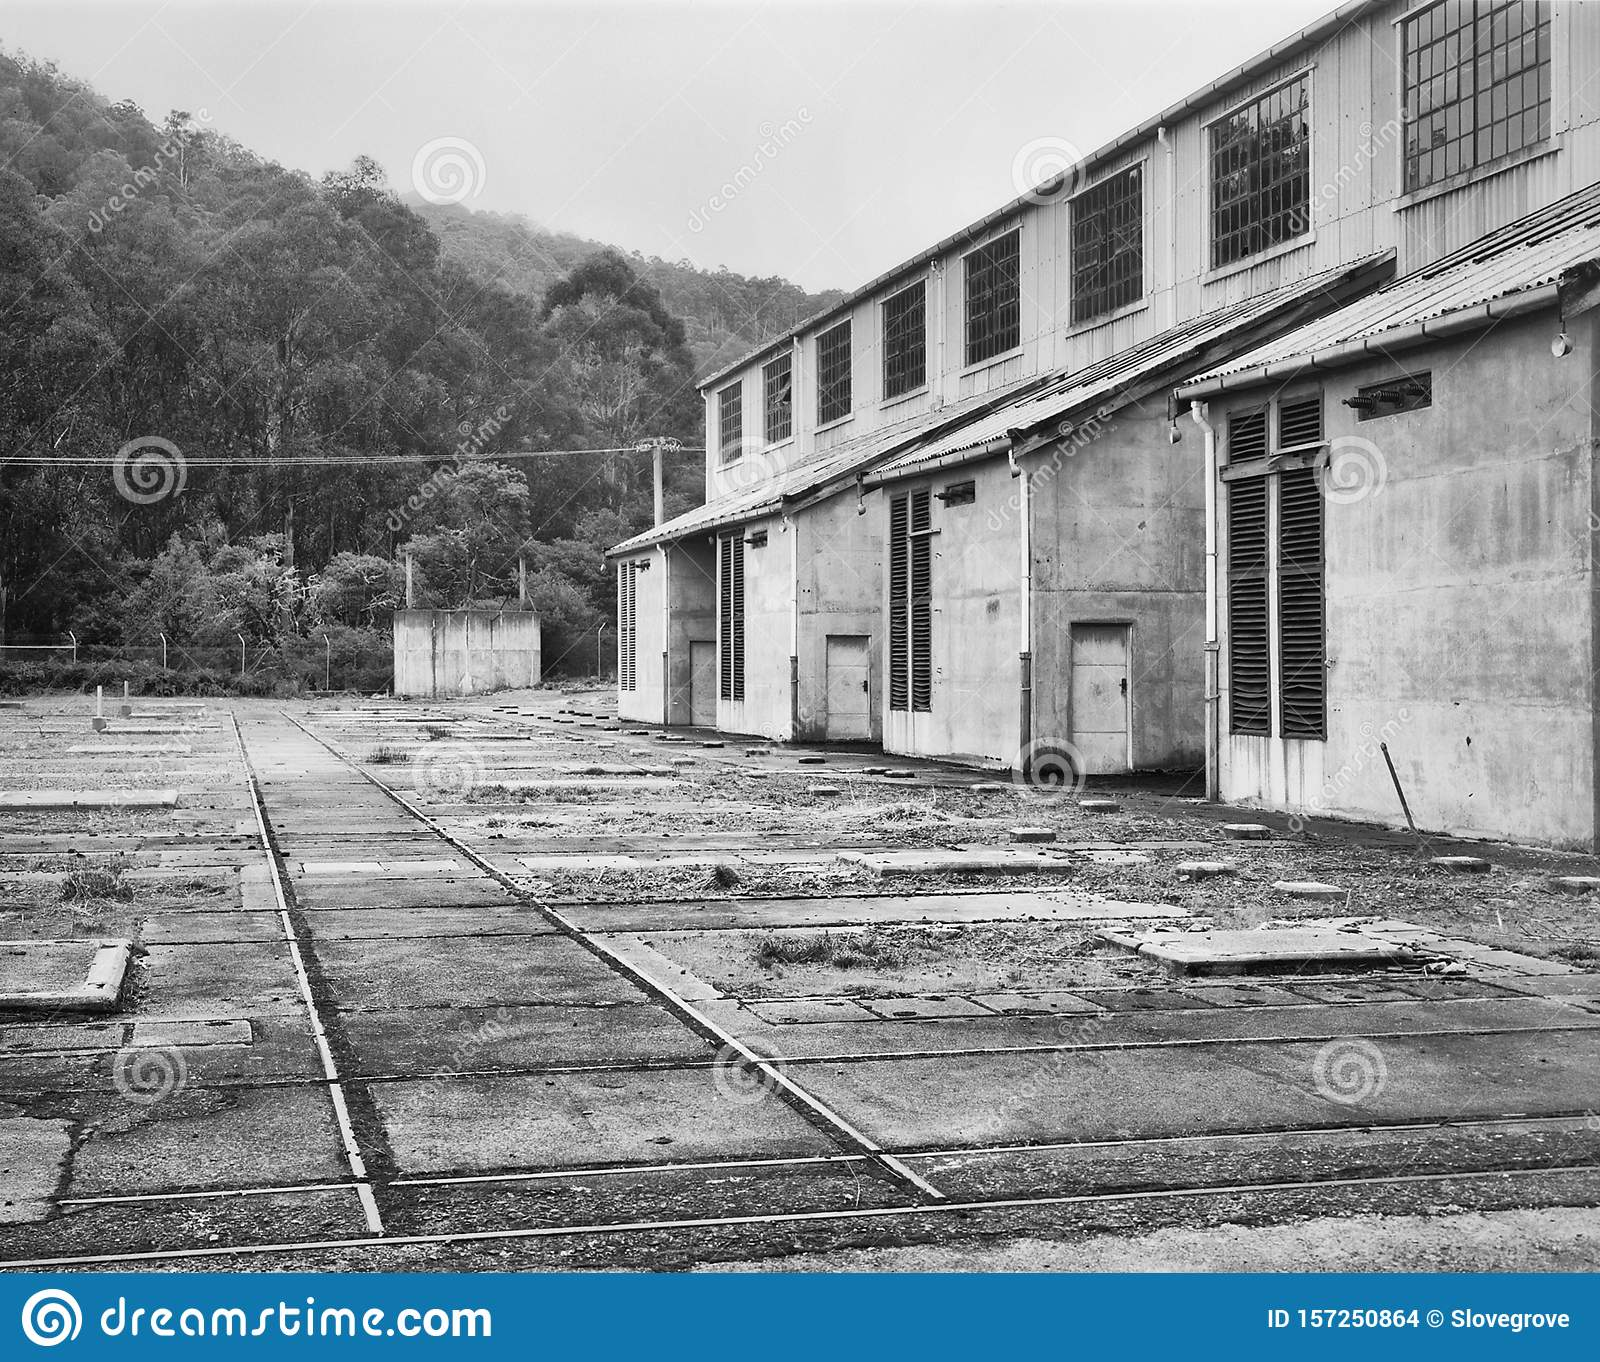 Film Image Of An Abandoned Industrial Site Stock Photo